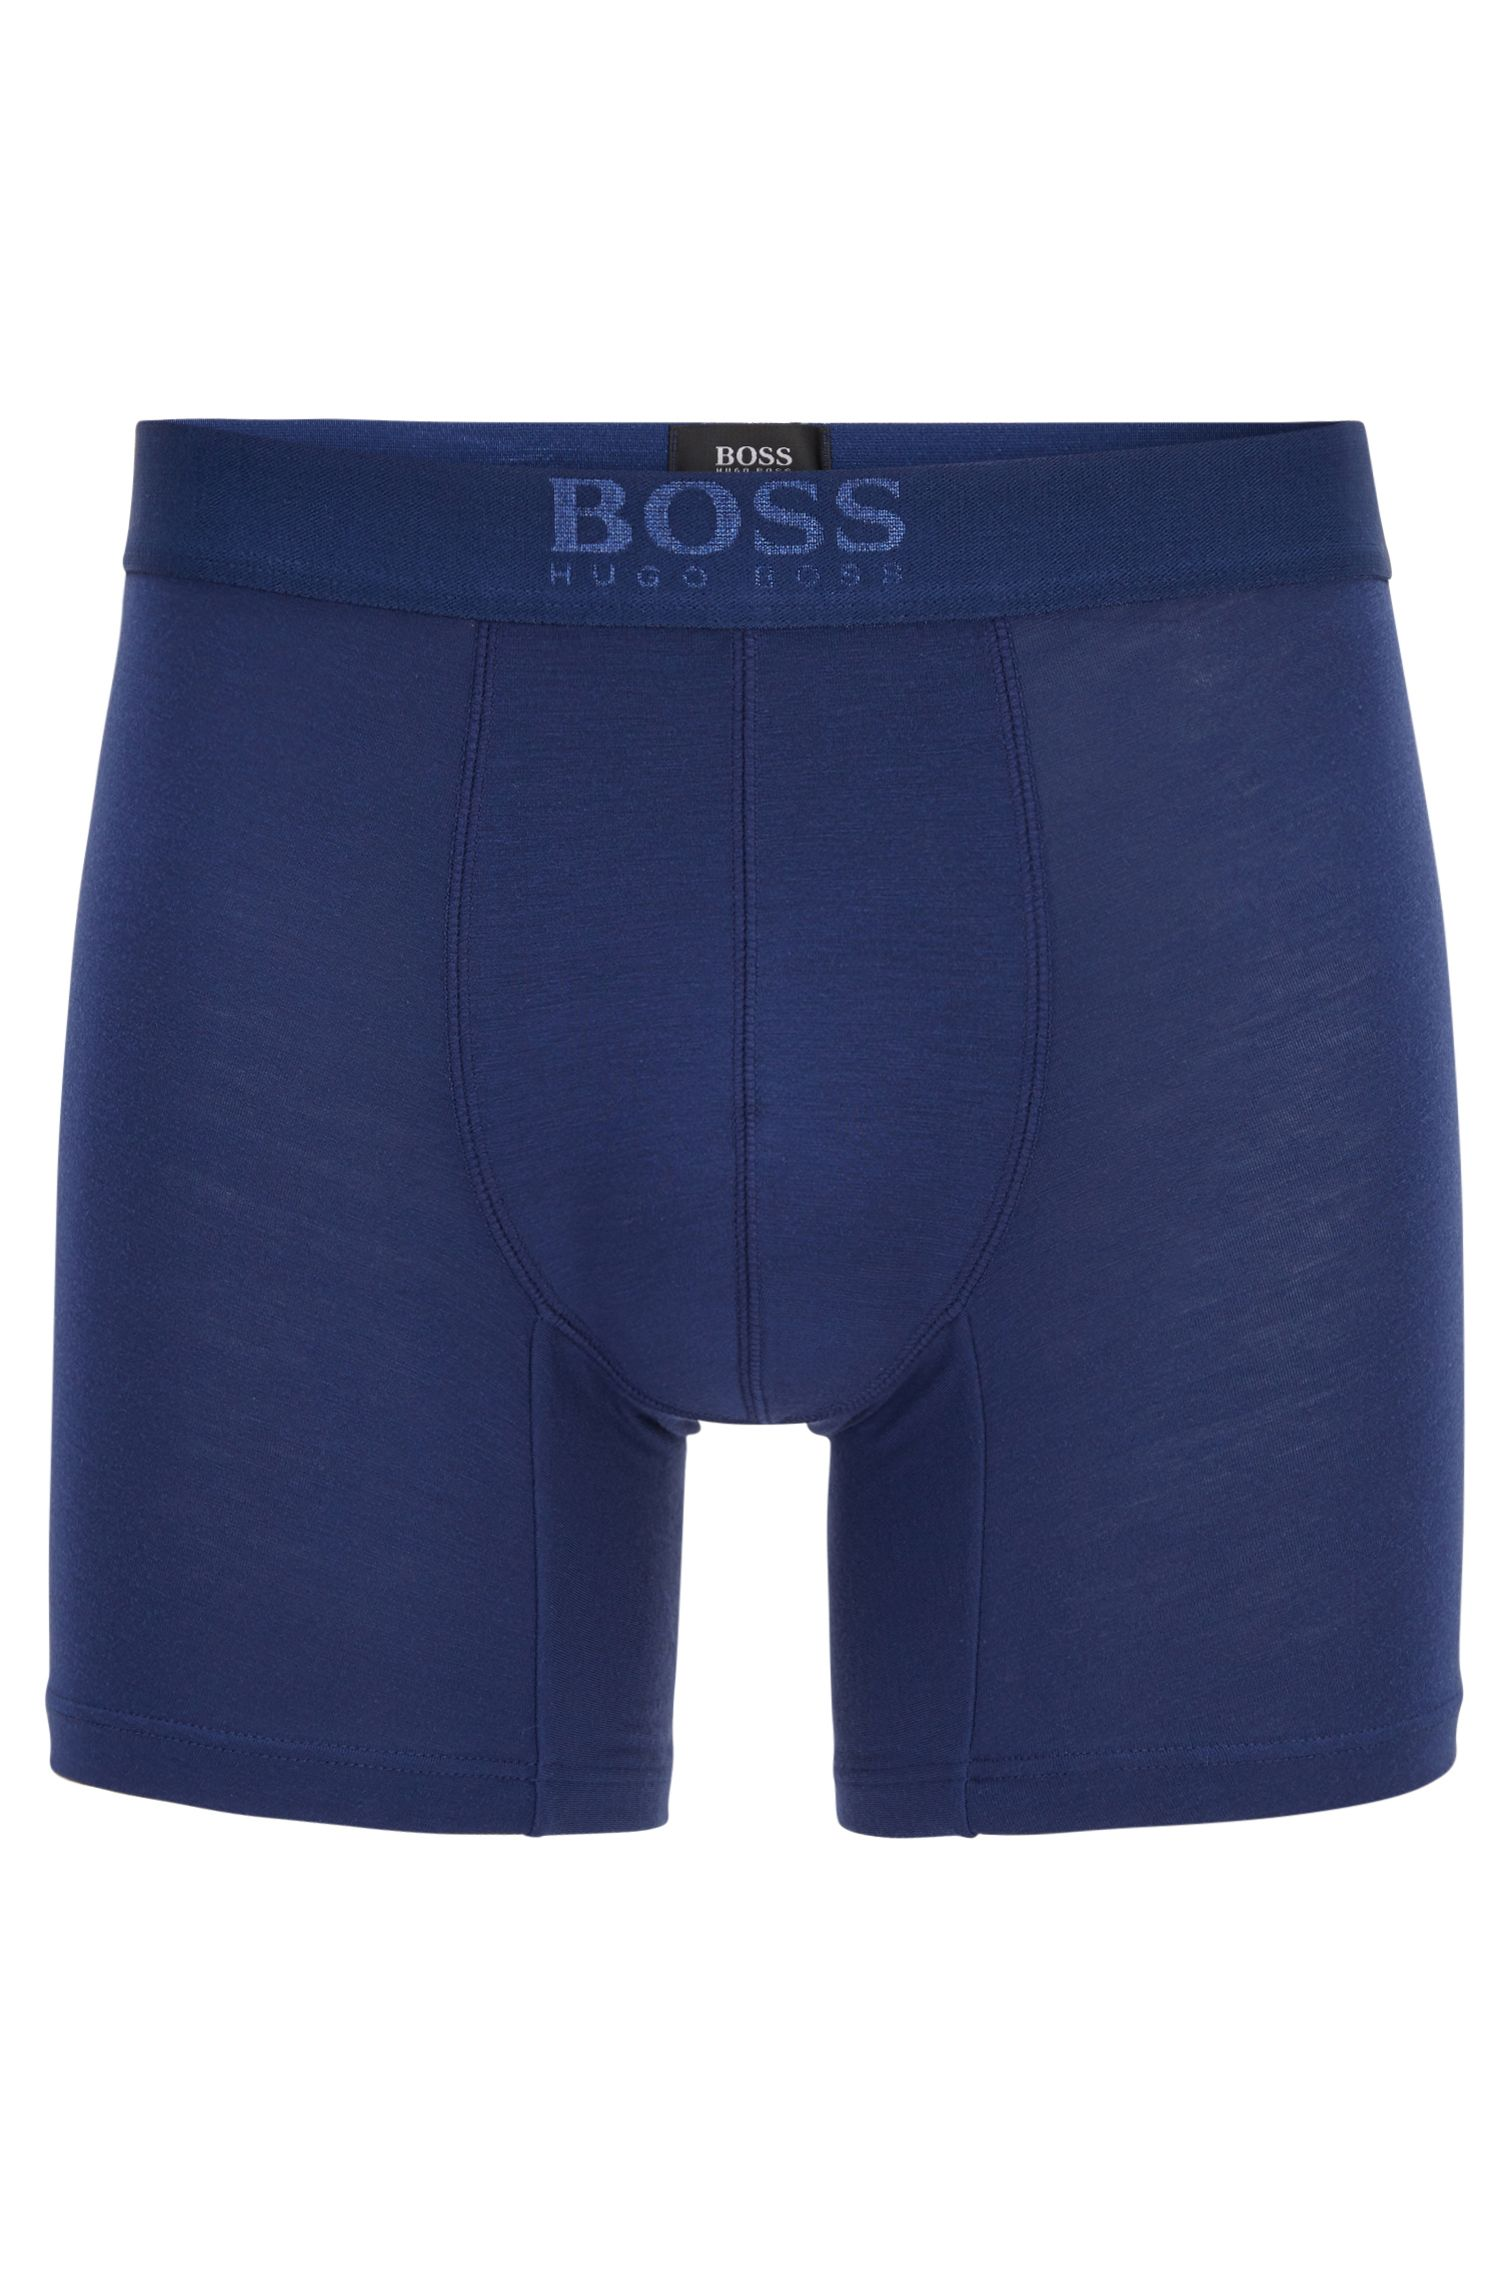 Stretch Modal Boxer Brief | Boxer Brief Modal